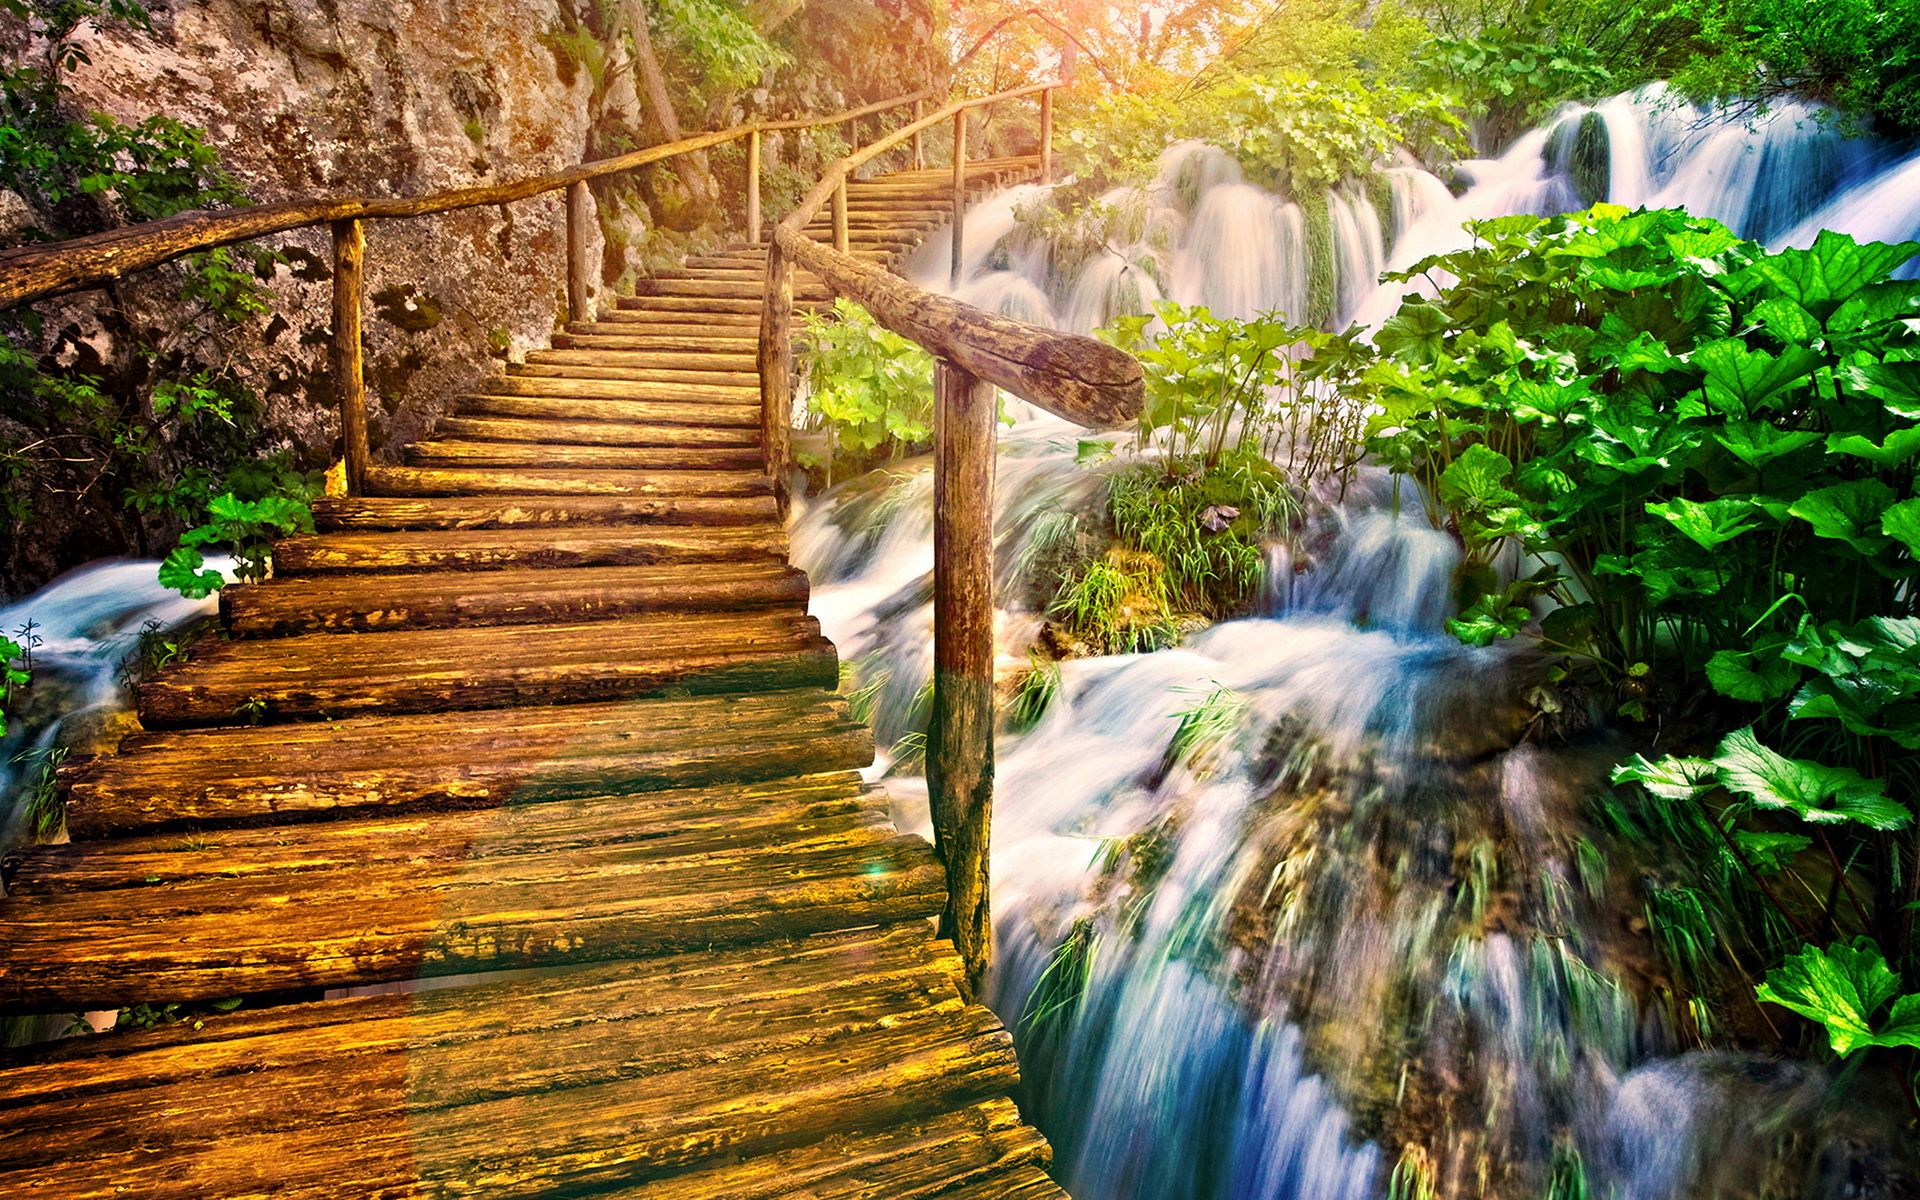 036 33610 Nature Photography Nature Wallpaper Scenery